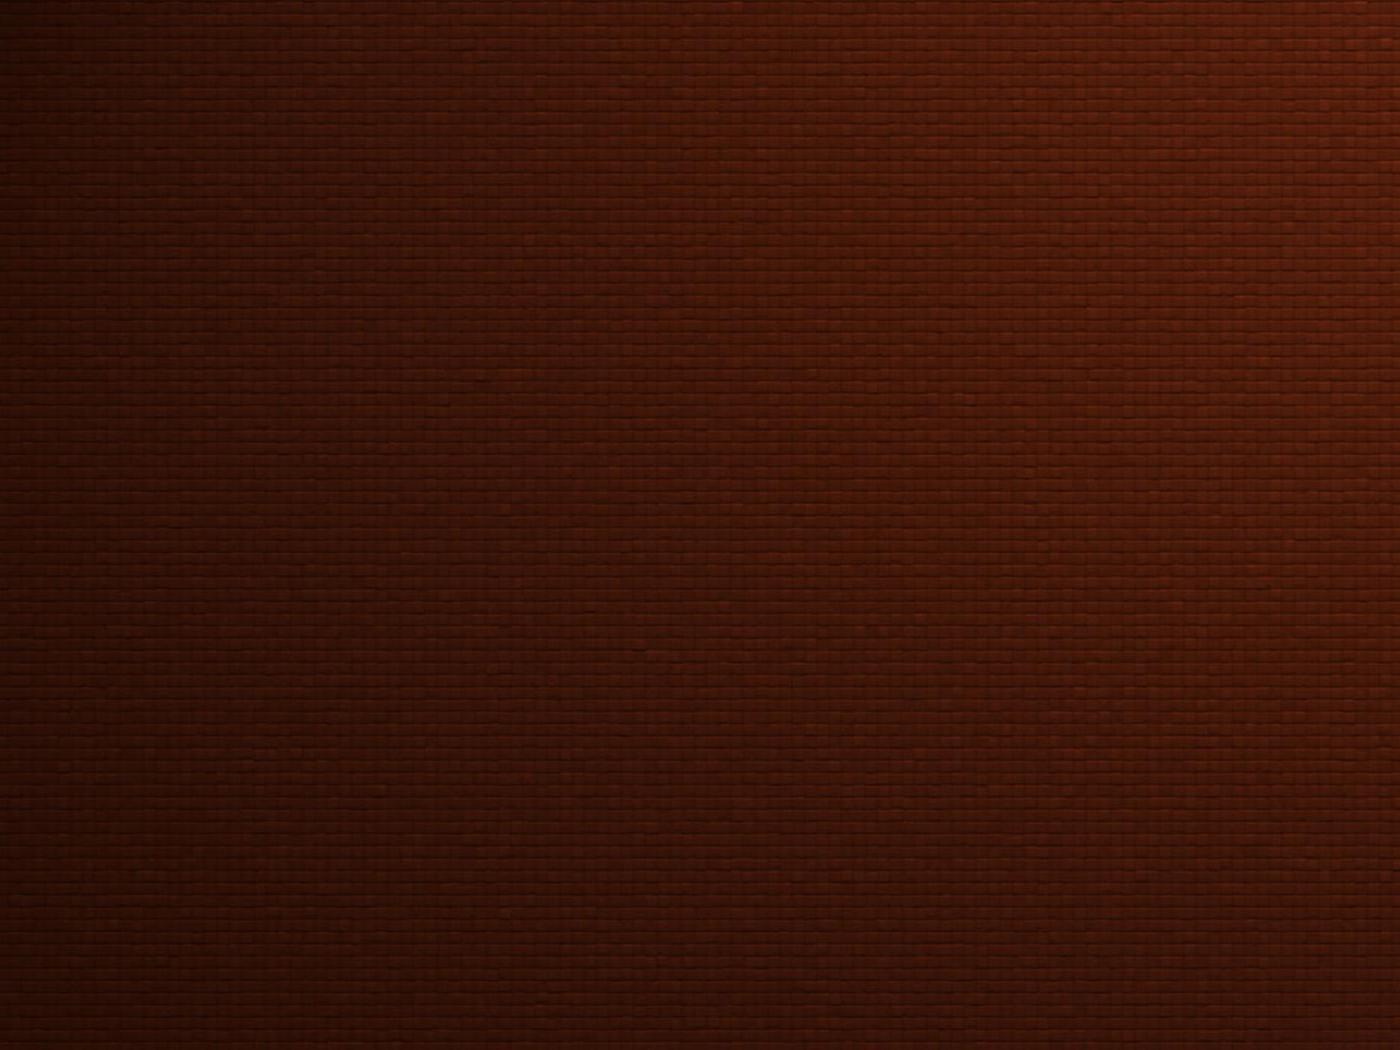 1400x1050 | Brown Windows Wallpaper | Abstract Brown Wallpaper